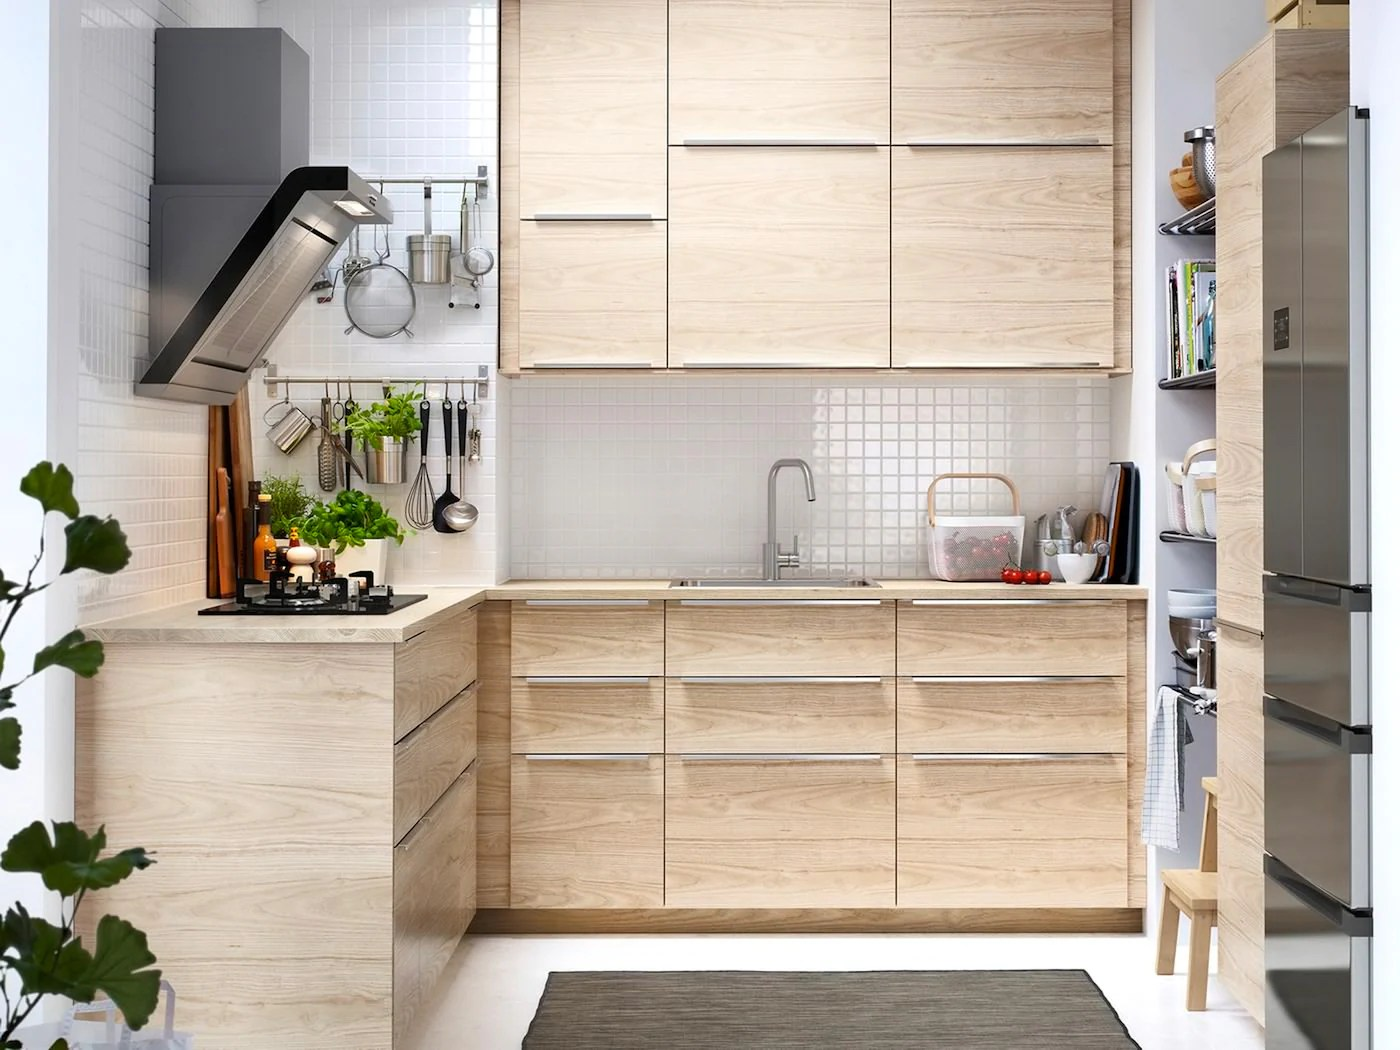 Kitchen Design 3d Model Kitchen Planner Planners Ikea